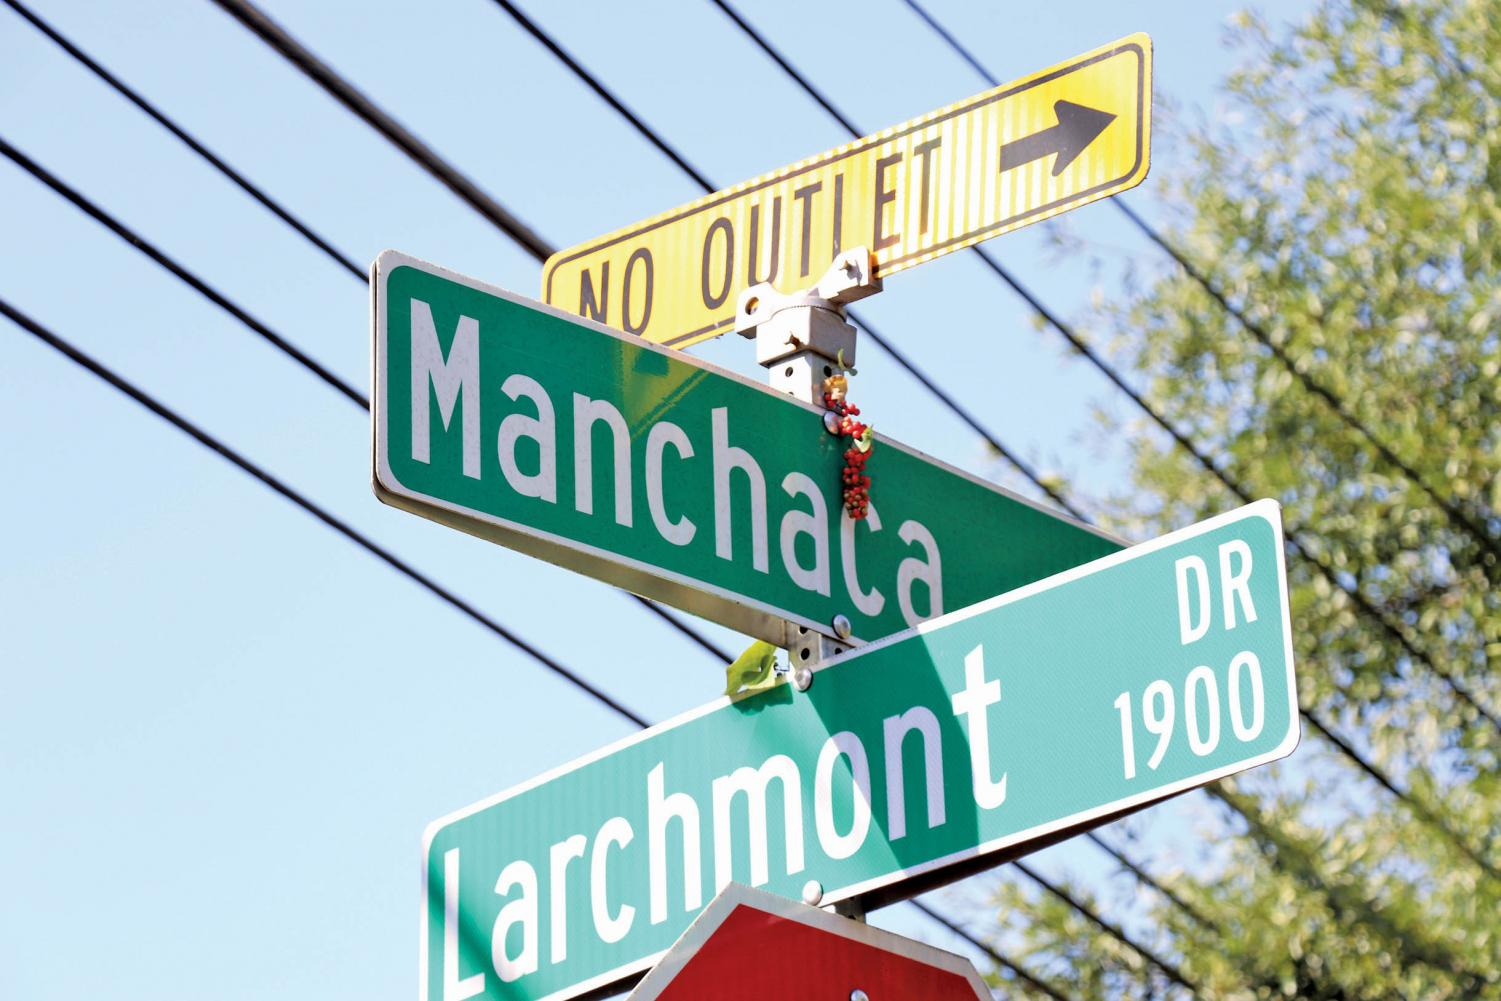 160 street signs in the city that include the incorrect name, to replace every sign will cost around $24,000. 33,000 residents that live on the street will also be required to change all of their personal records, such as driver's licenses, voter registrations, property insurance and any legal documents.